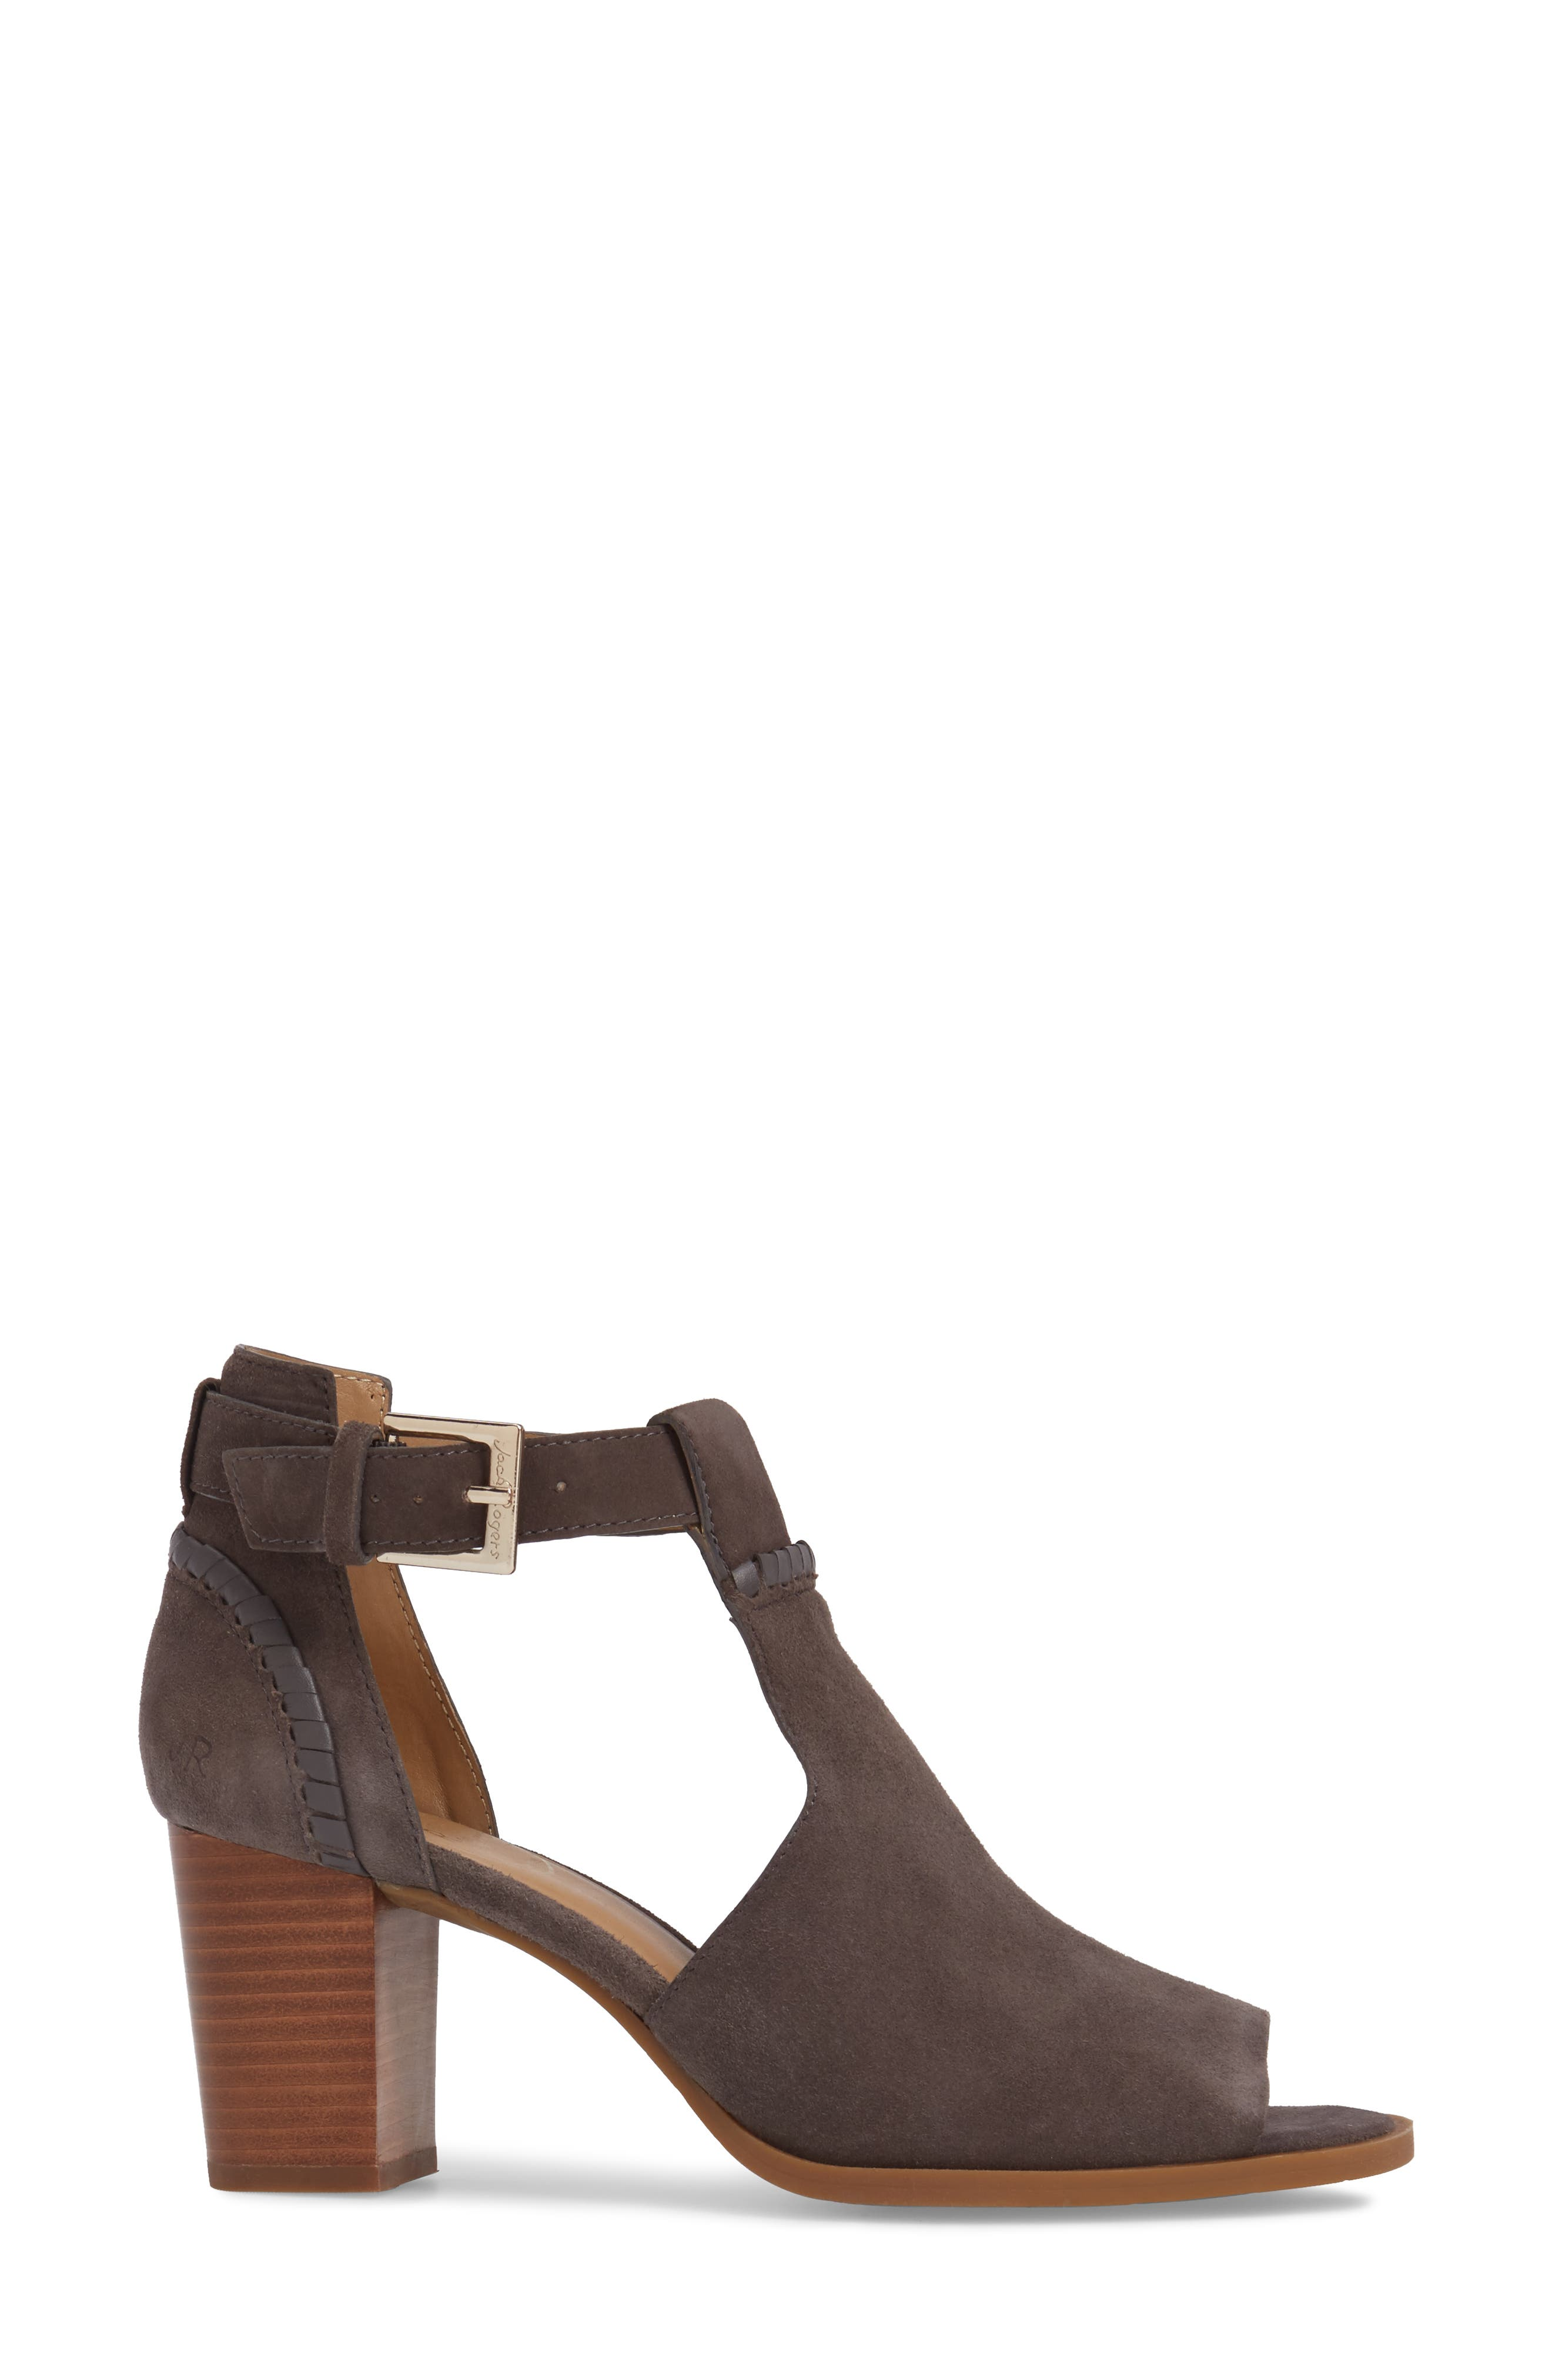 Cameron Block Heel Sandal,                             Alternate thumbnail 3, color,                             Charcoal Suede